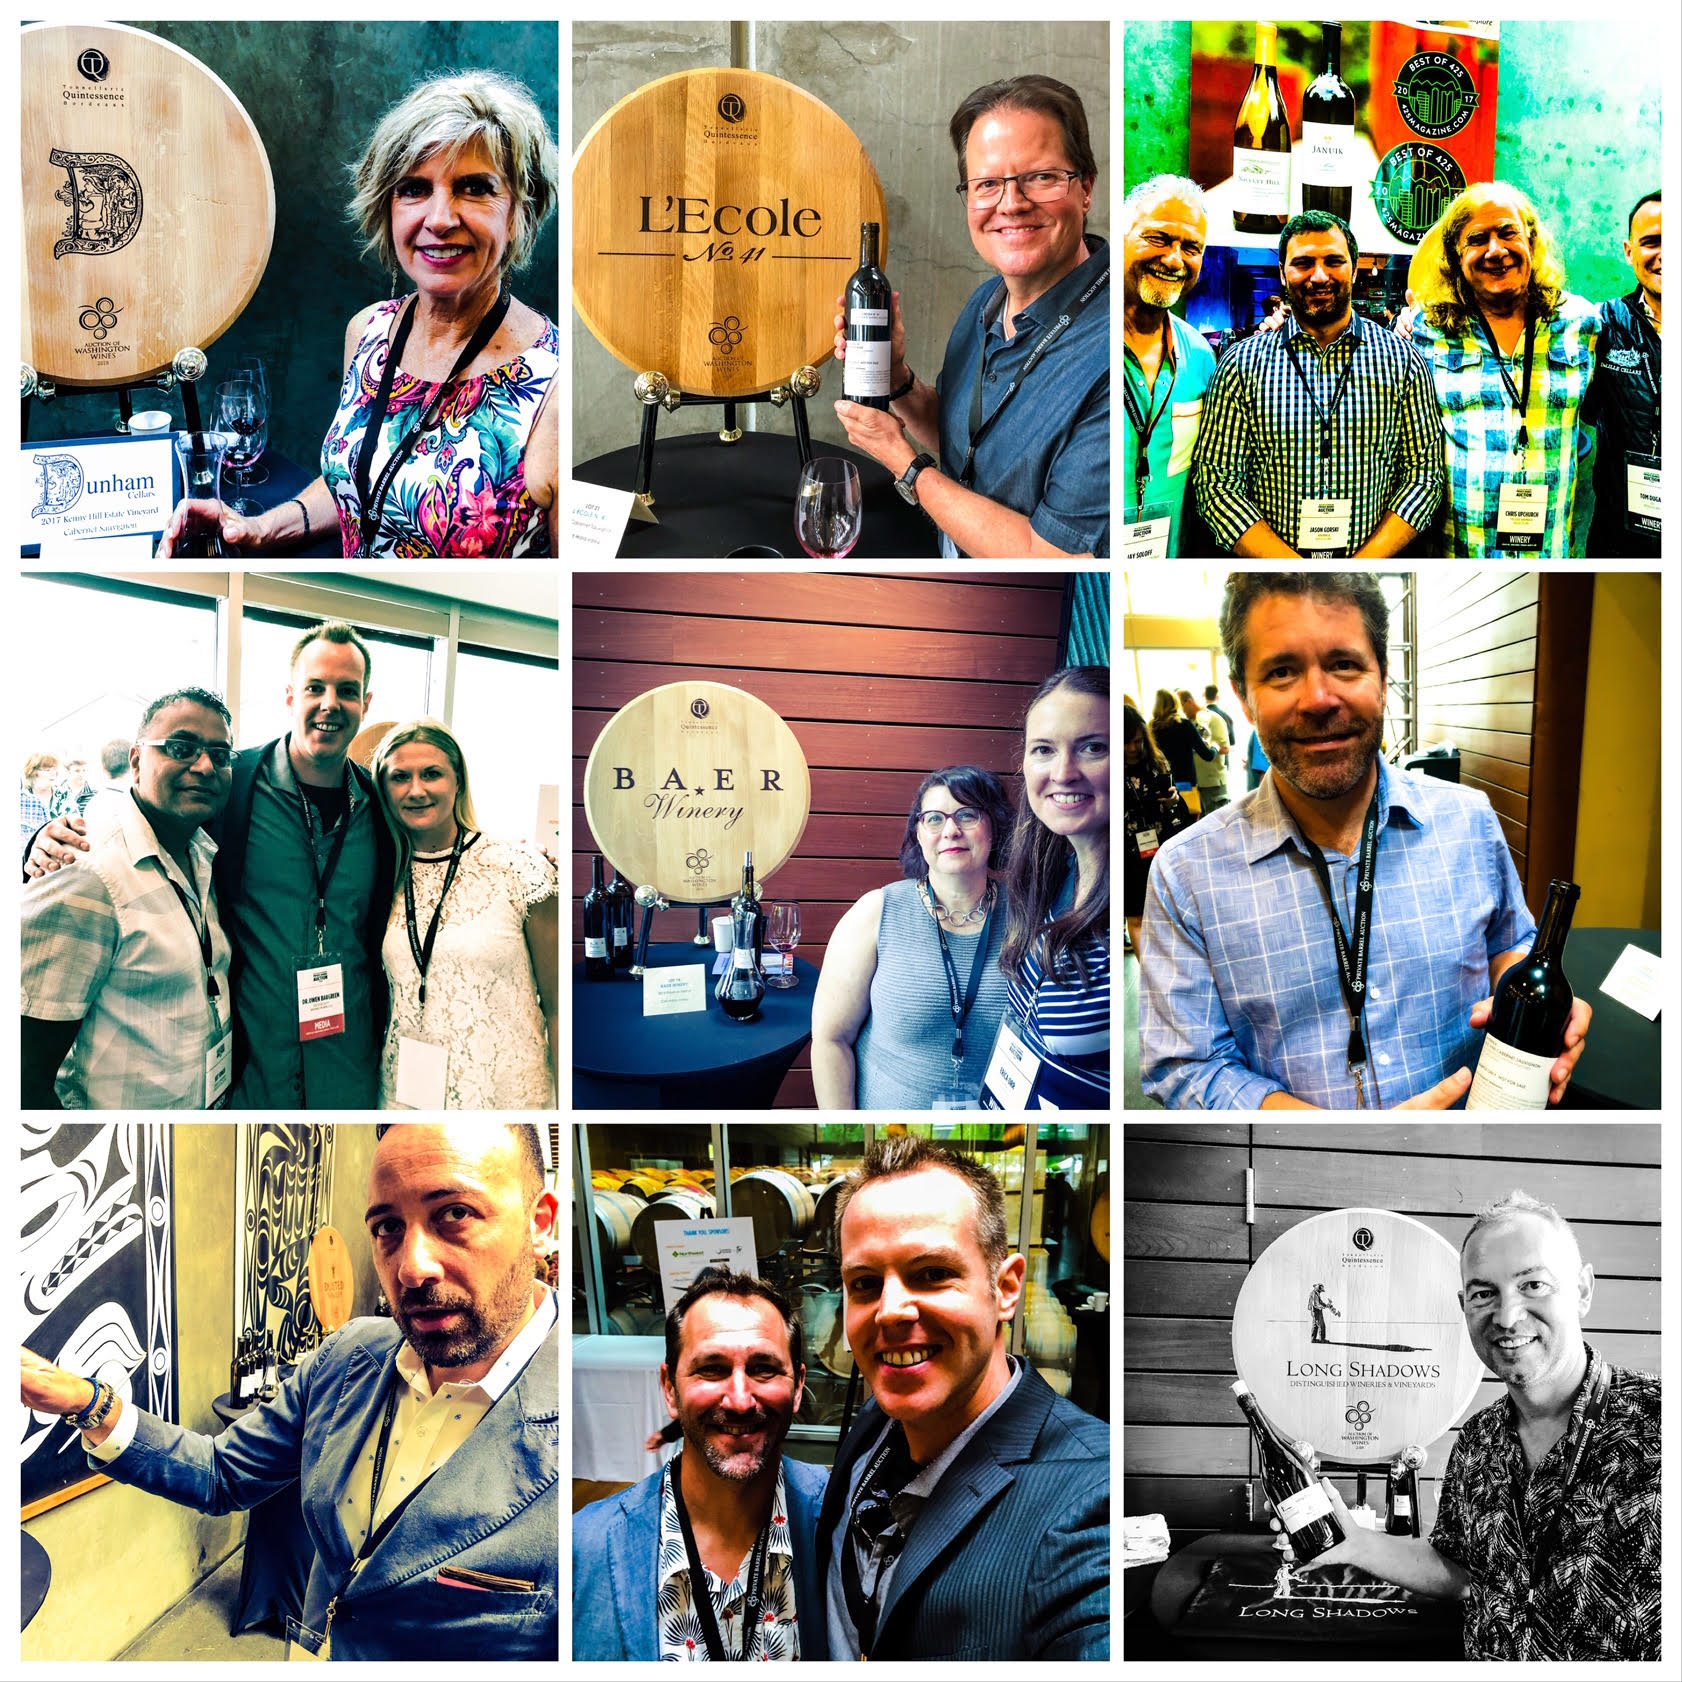 The many wonderful faces of Washington wine will be on hand this weekend for the big Auction of Washington Wines weekend in Woodinville.